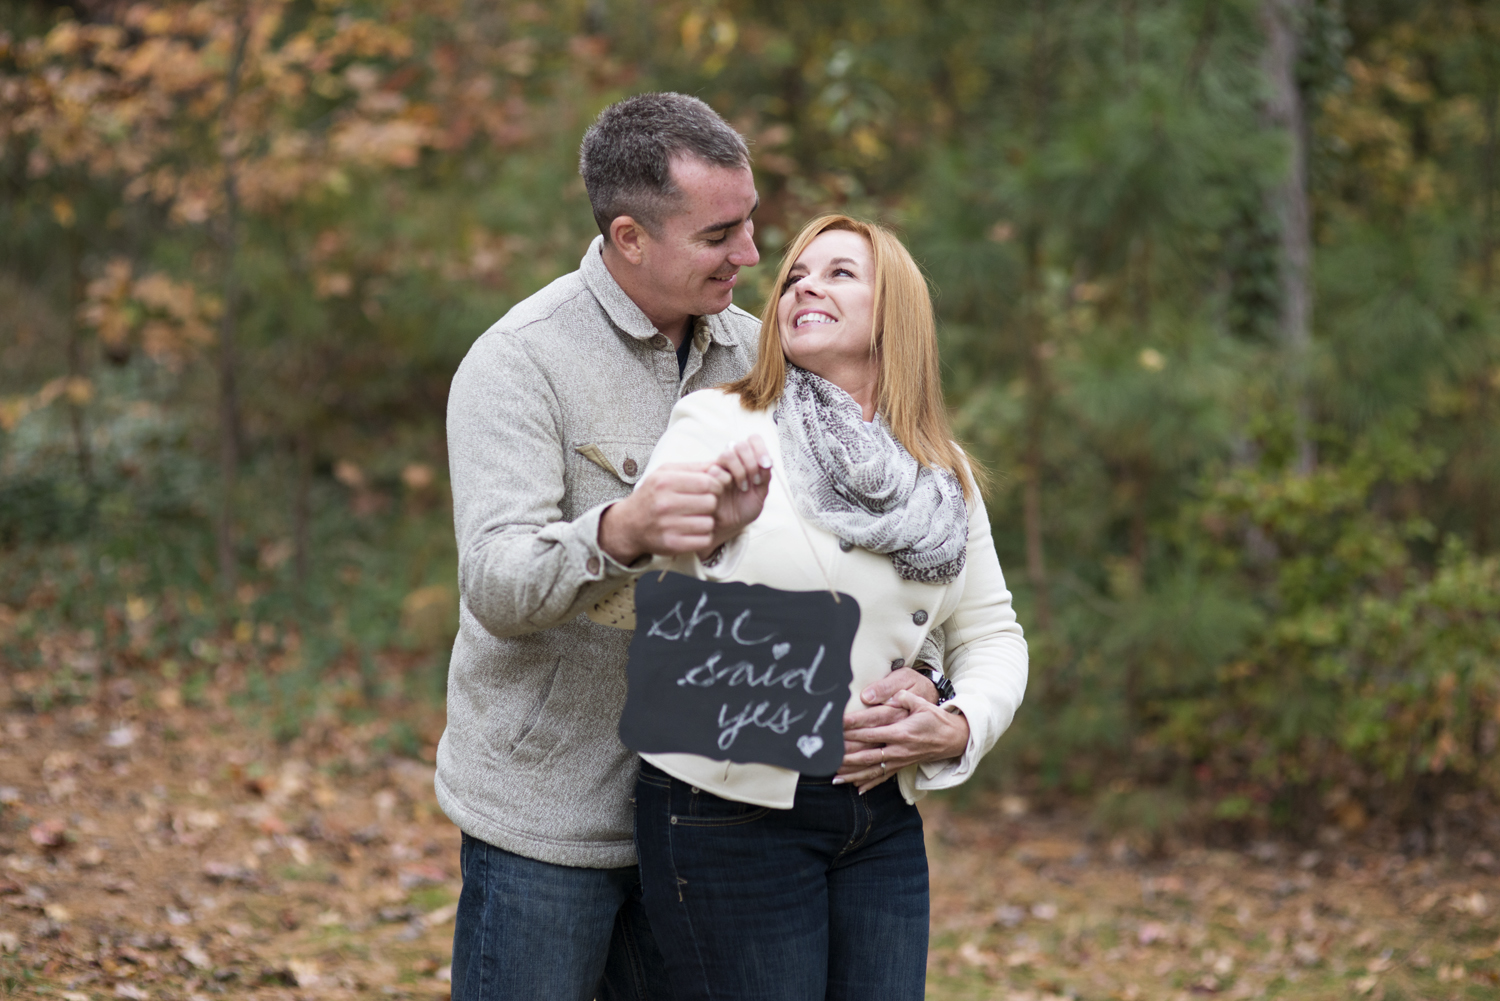 Cute fall engagement with she said yes chalkboard sign